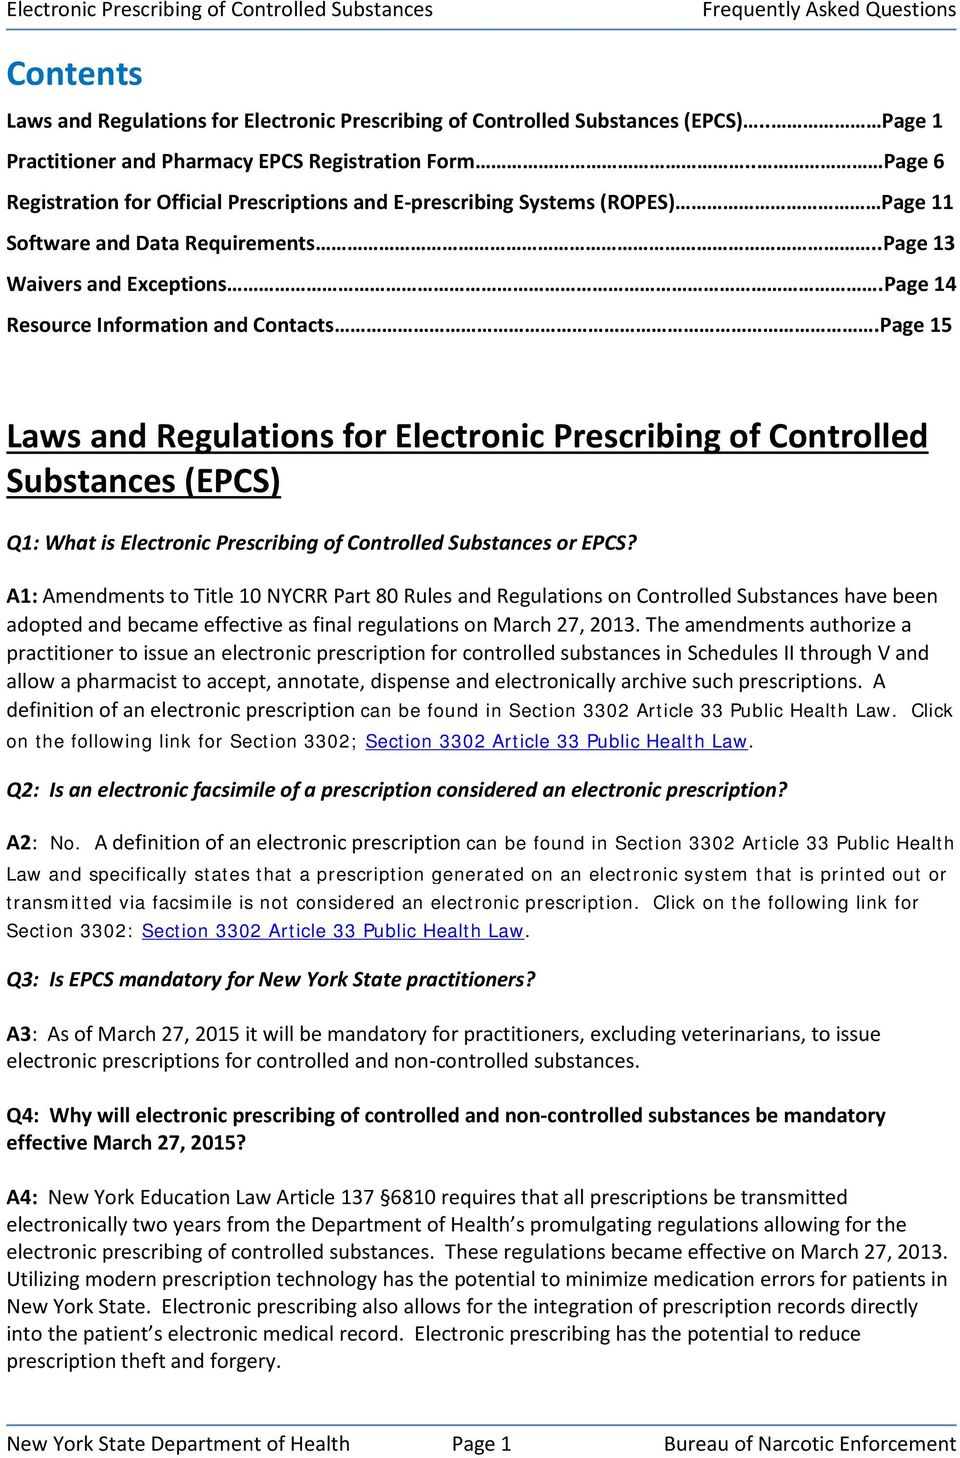 frequently asked questions for electronic prescribing of controlled